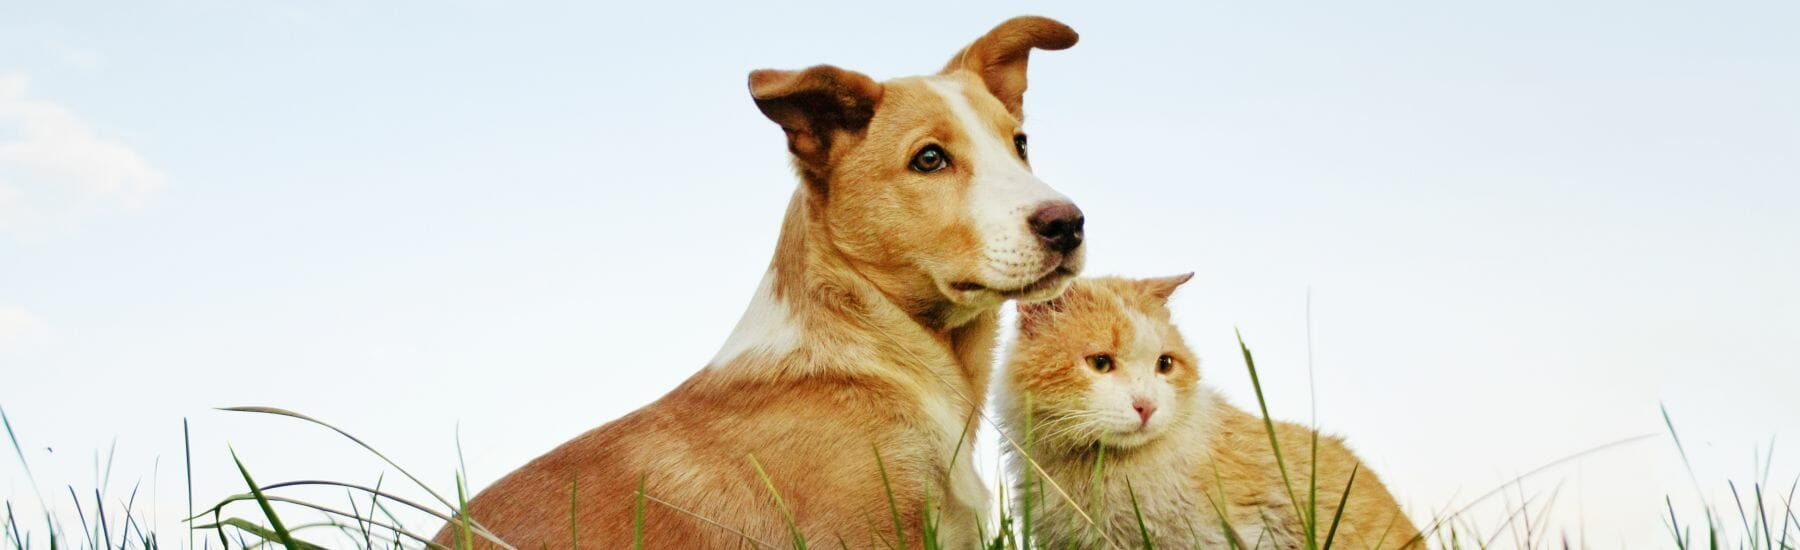 Dog and cat sitting in grass